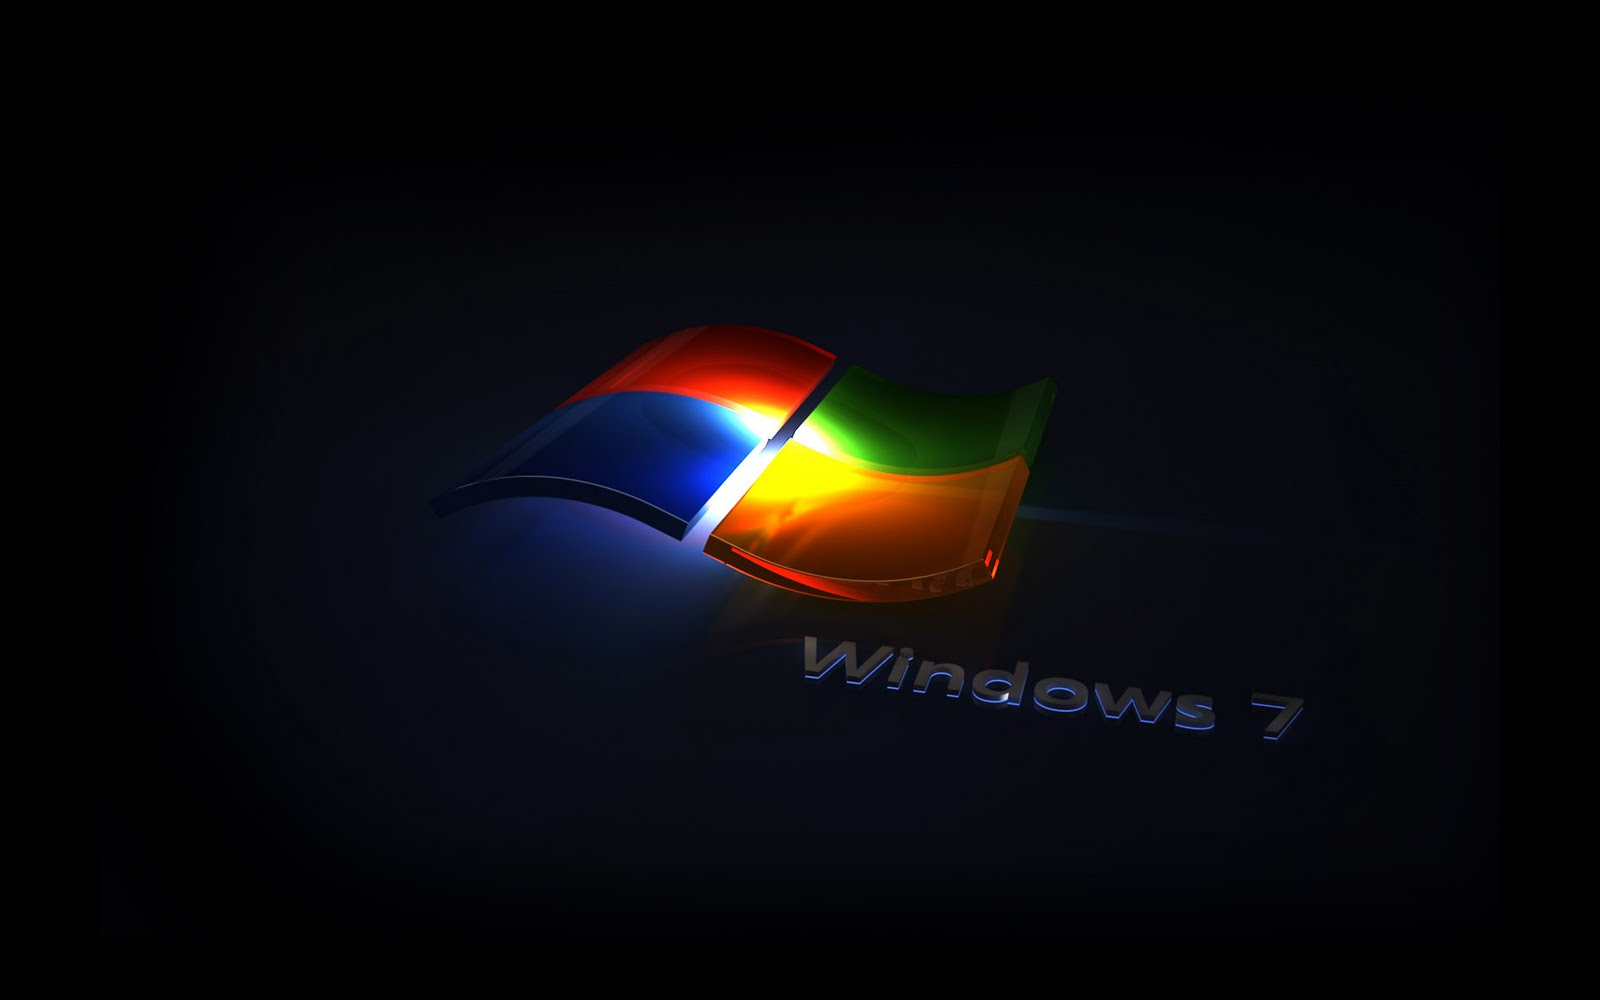 Windows 7 Wallpapers Widescreen Laptop Wallpapers - Slwallpapers